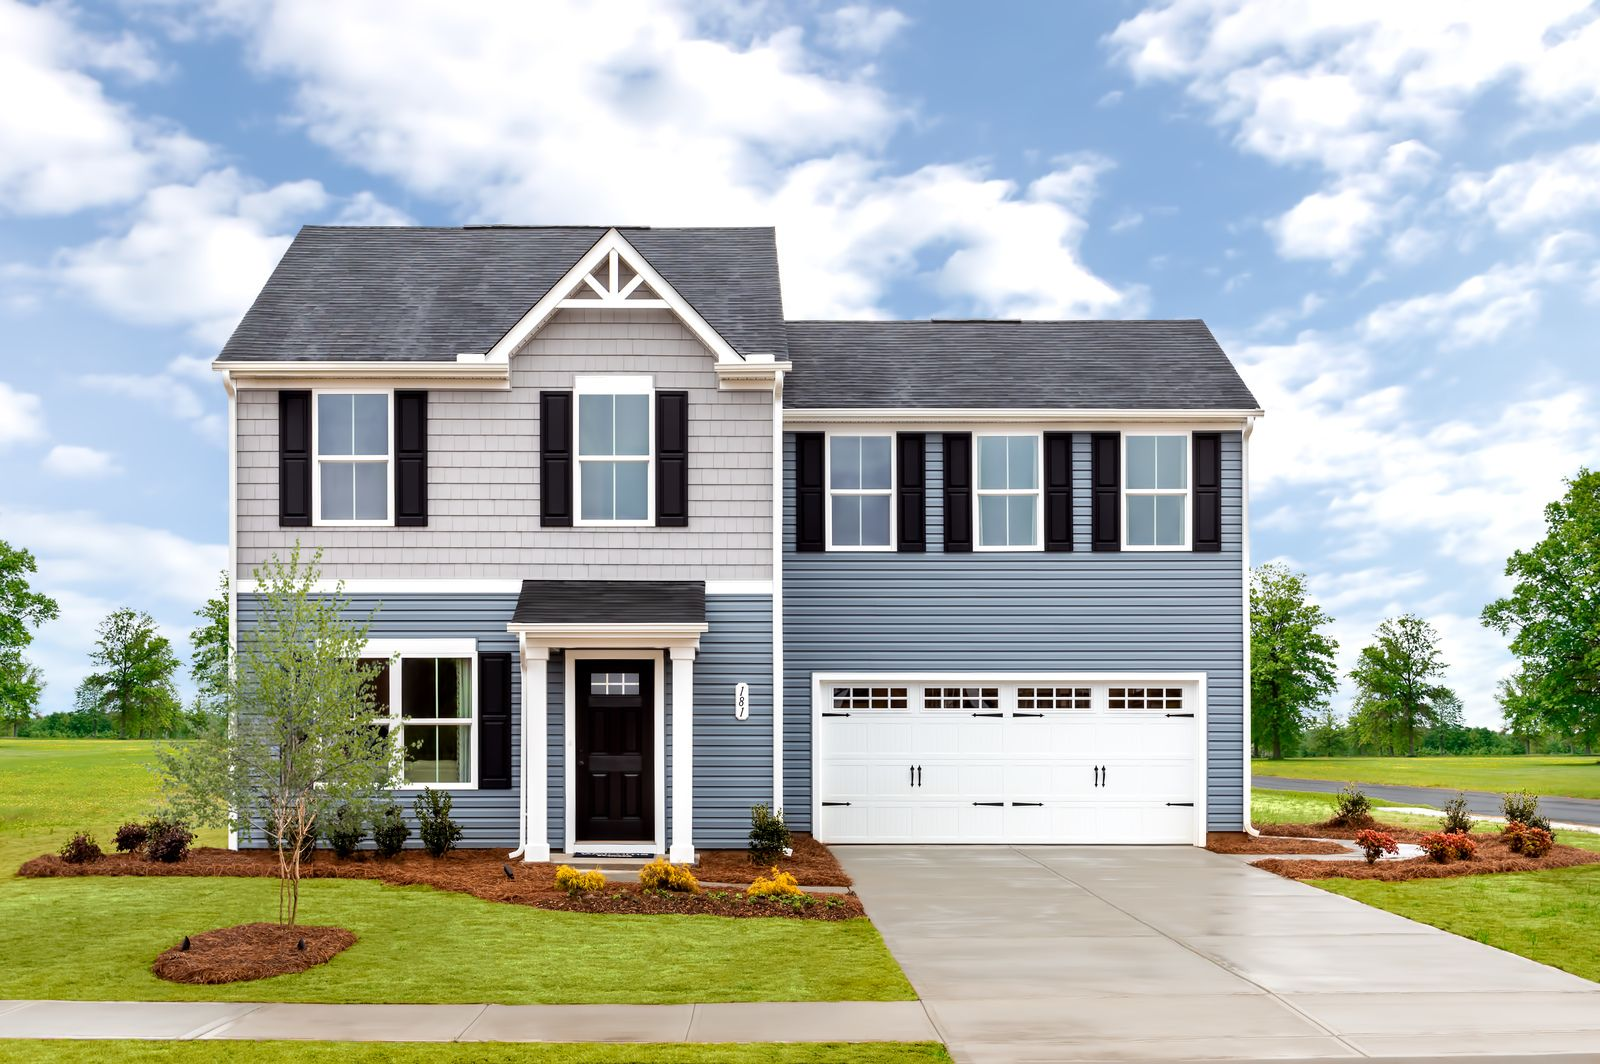 WELCOME HOME TO WEST BROOK ESTATES:Most affordable new homes in Stark County. Includes full landscaping, all appliances, no HOA fees, and low taxes! From the mid $100s.Click here to schedule your 1-on-1 or virtual visit today!